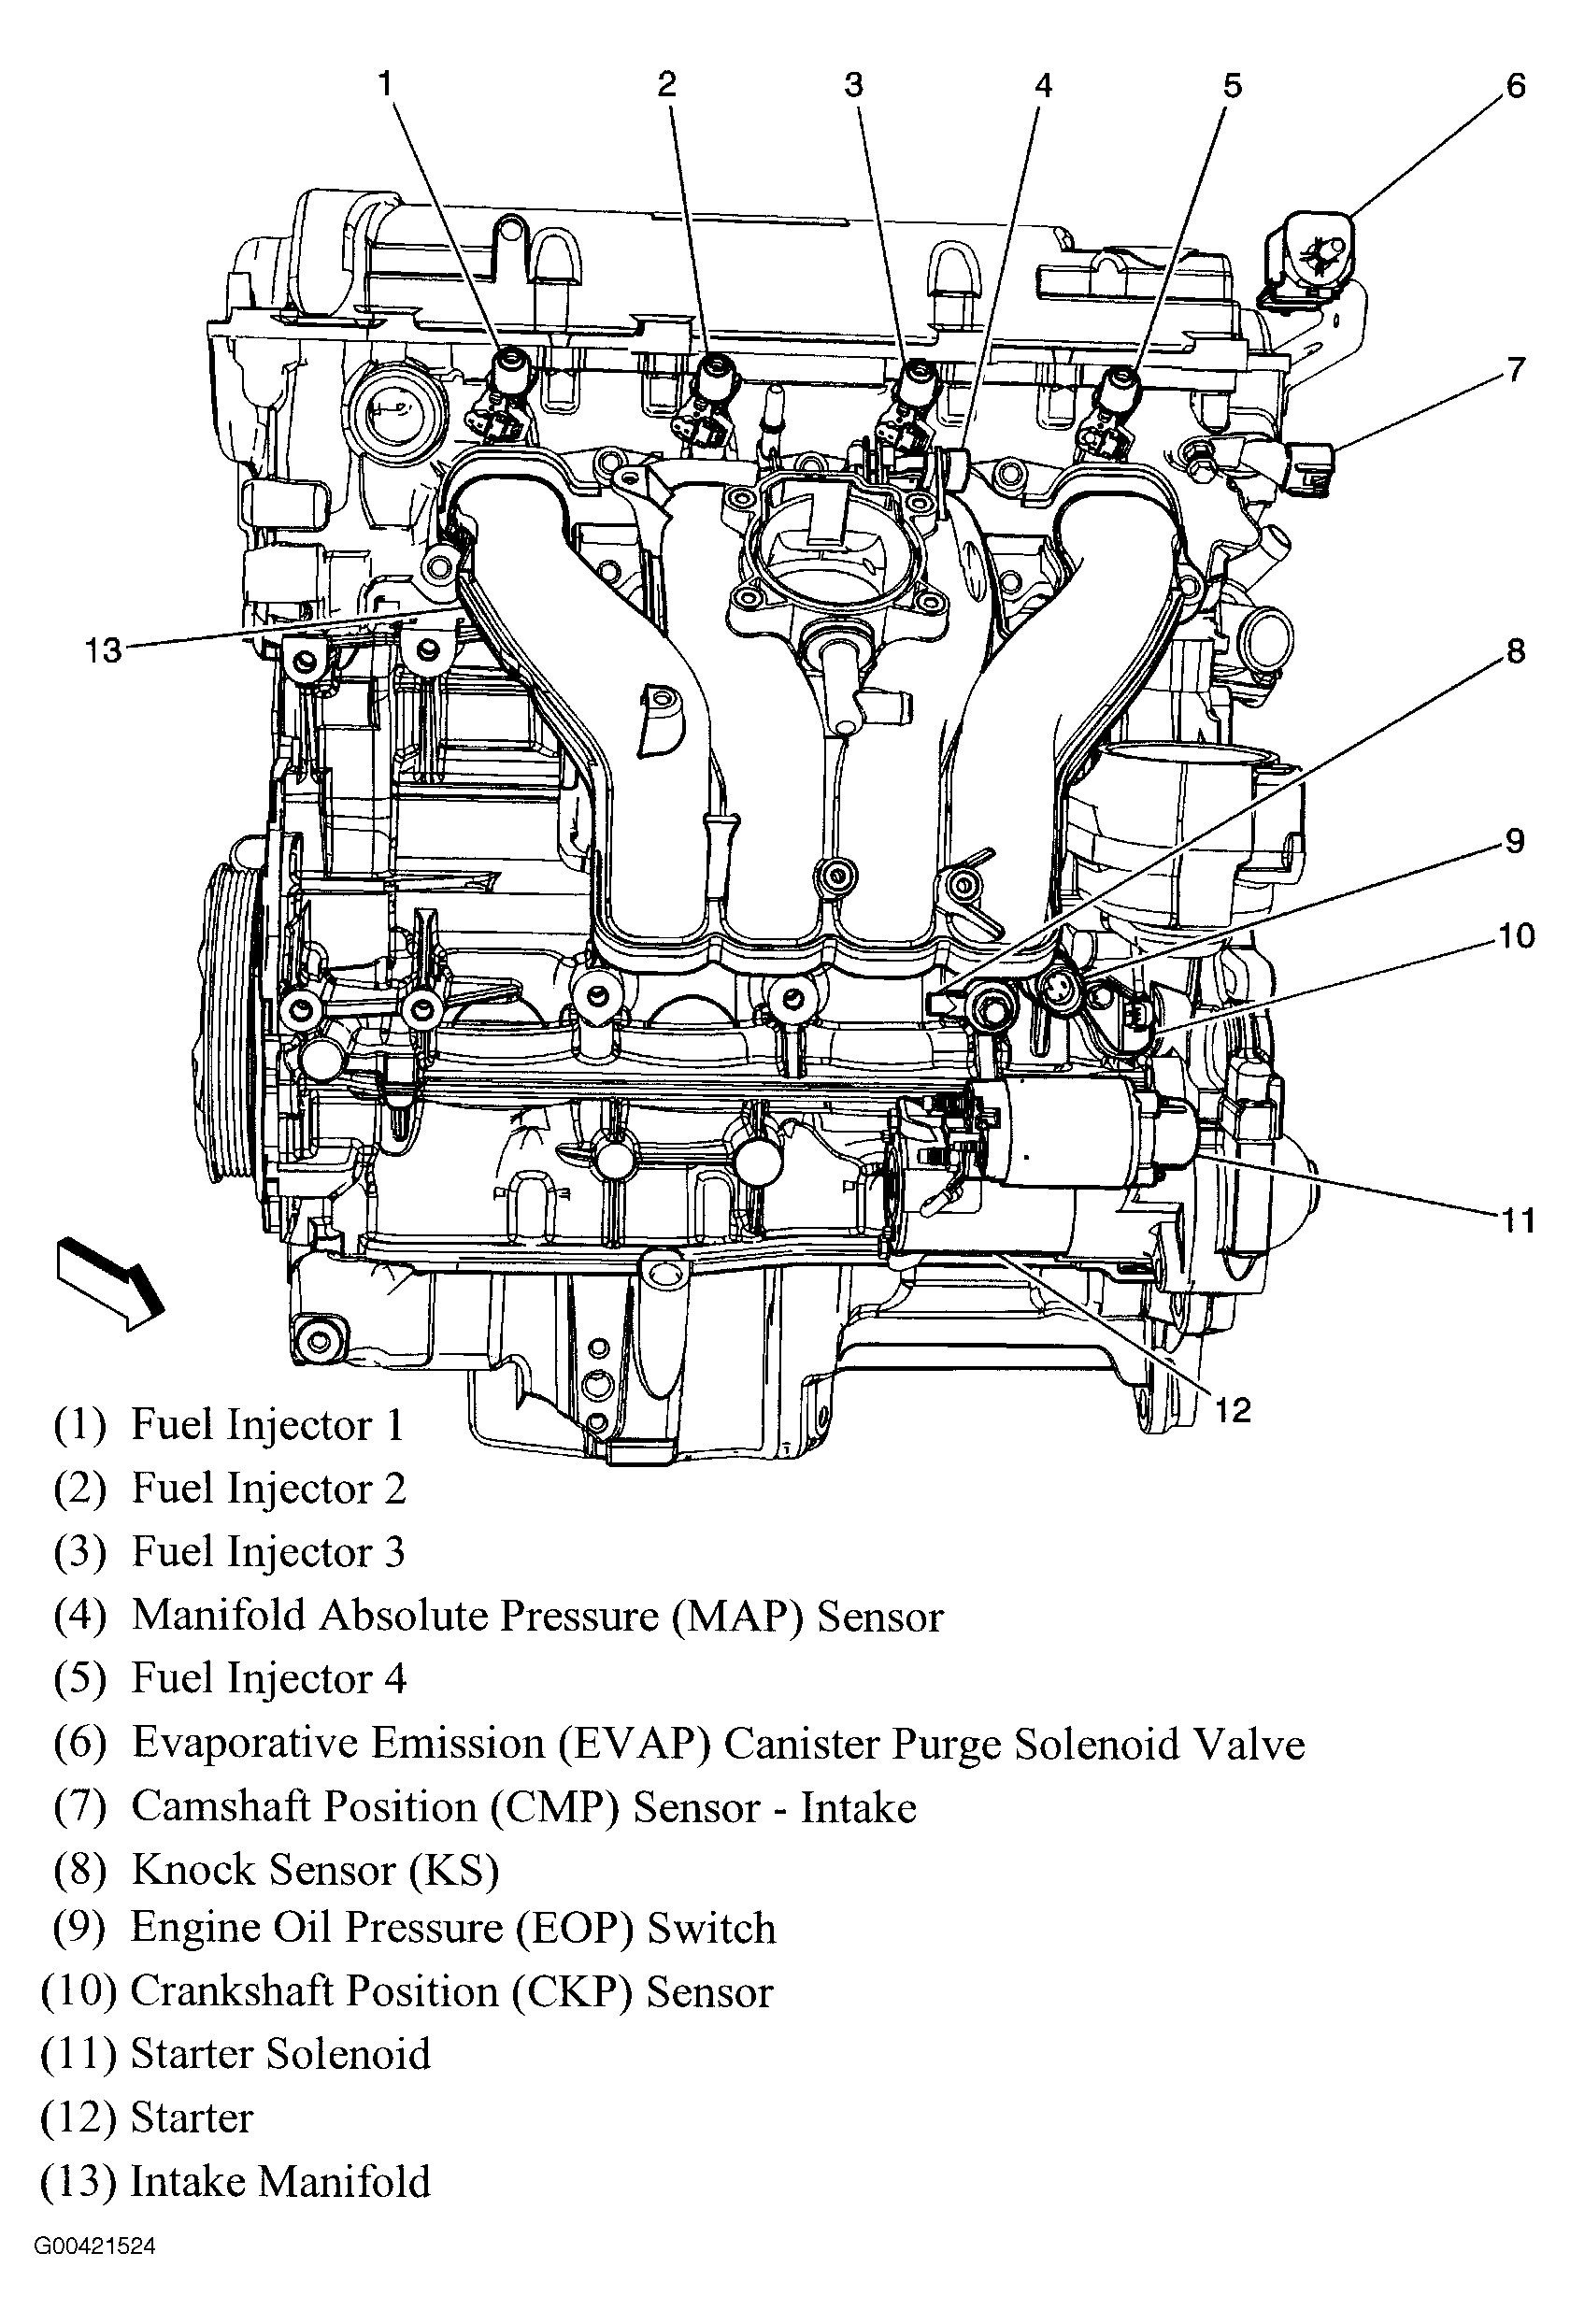 10 hp tecumseh engine diagram basic wiring diagram u2022 rh dev spokeapartments com tecumseh small engine wiring diagram